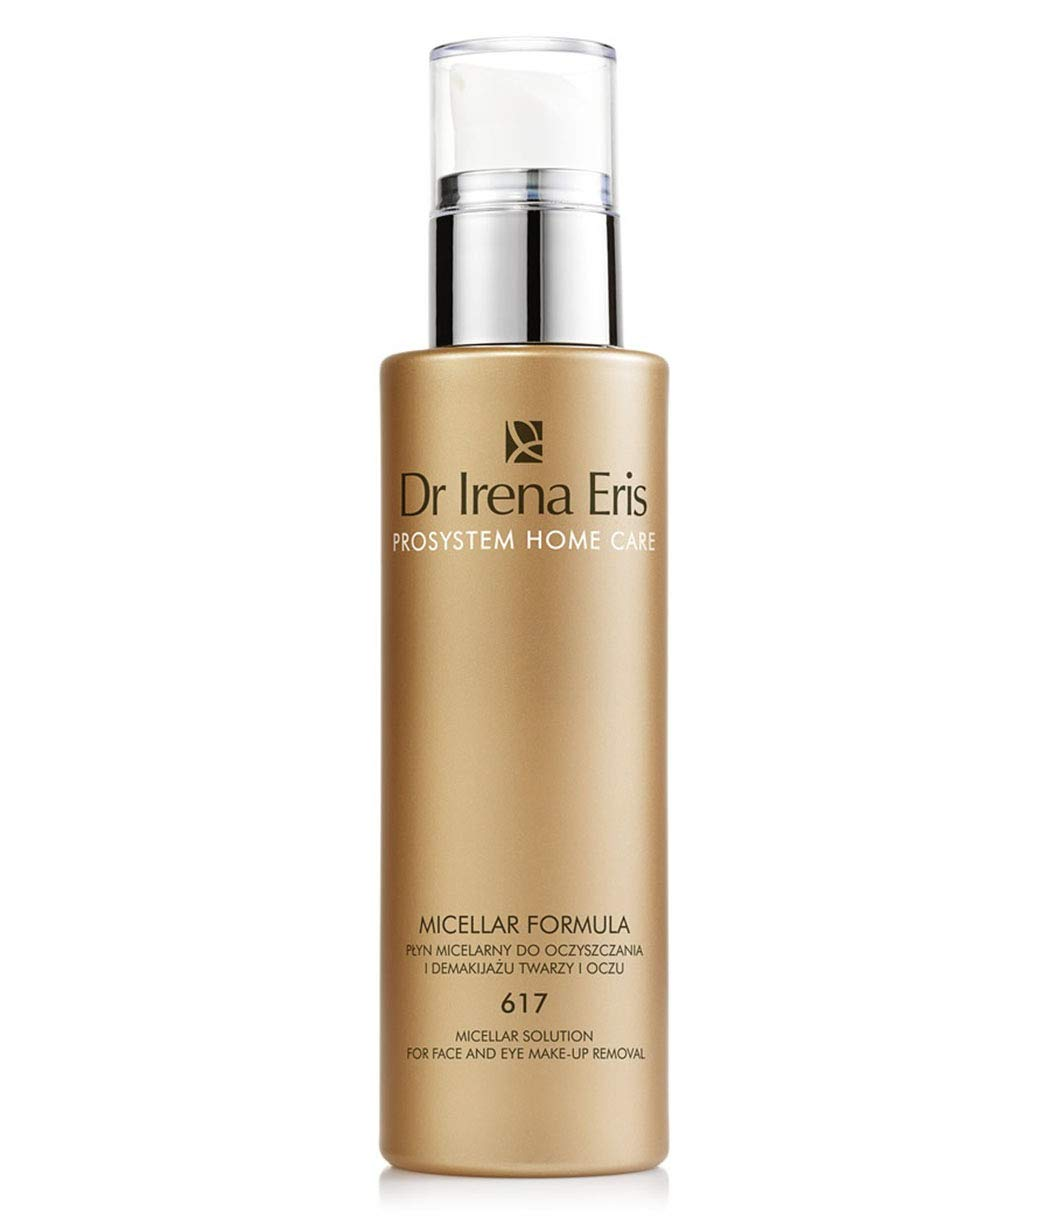 DR IRENA ERIS Makeup Removal and Skin Cleansing - MICELLAR Formula MICELLAR Solution for FACE and Eye Make-UP Removal - 200 ml